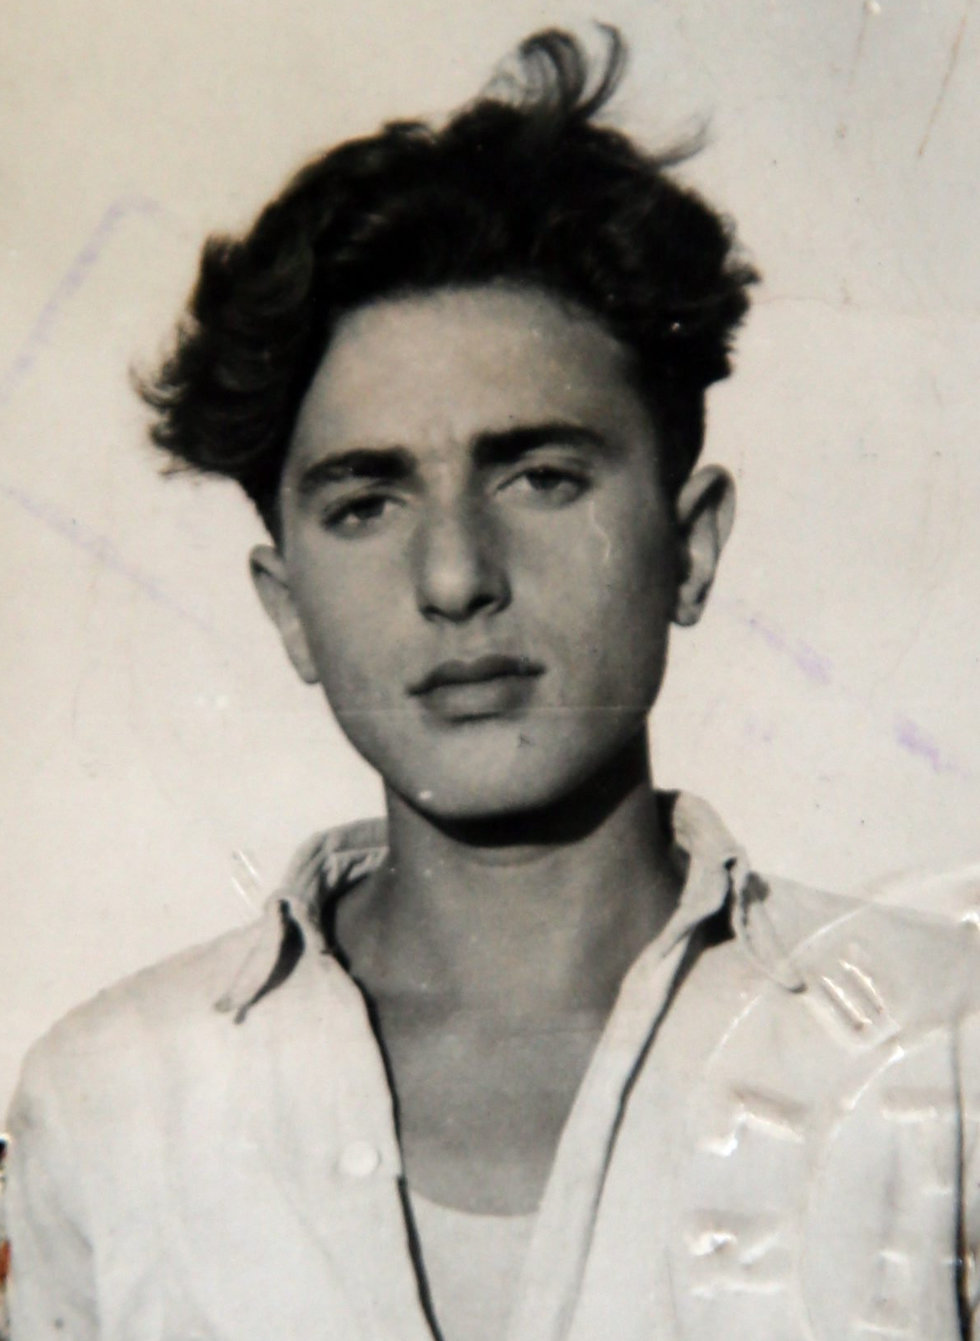 Levi Eden when he was a young man